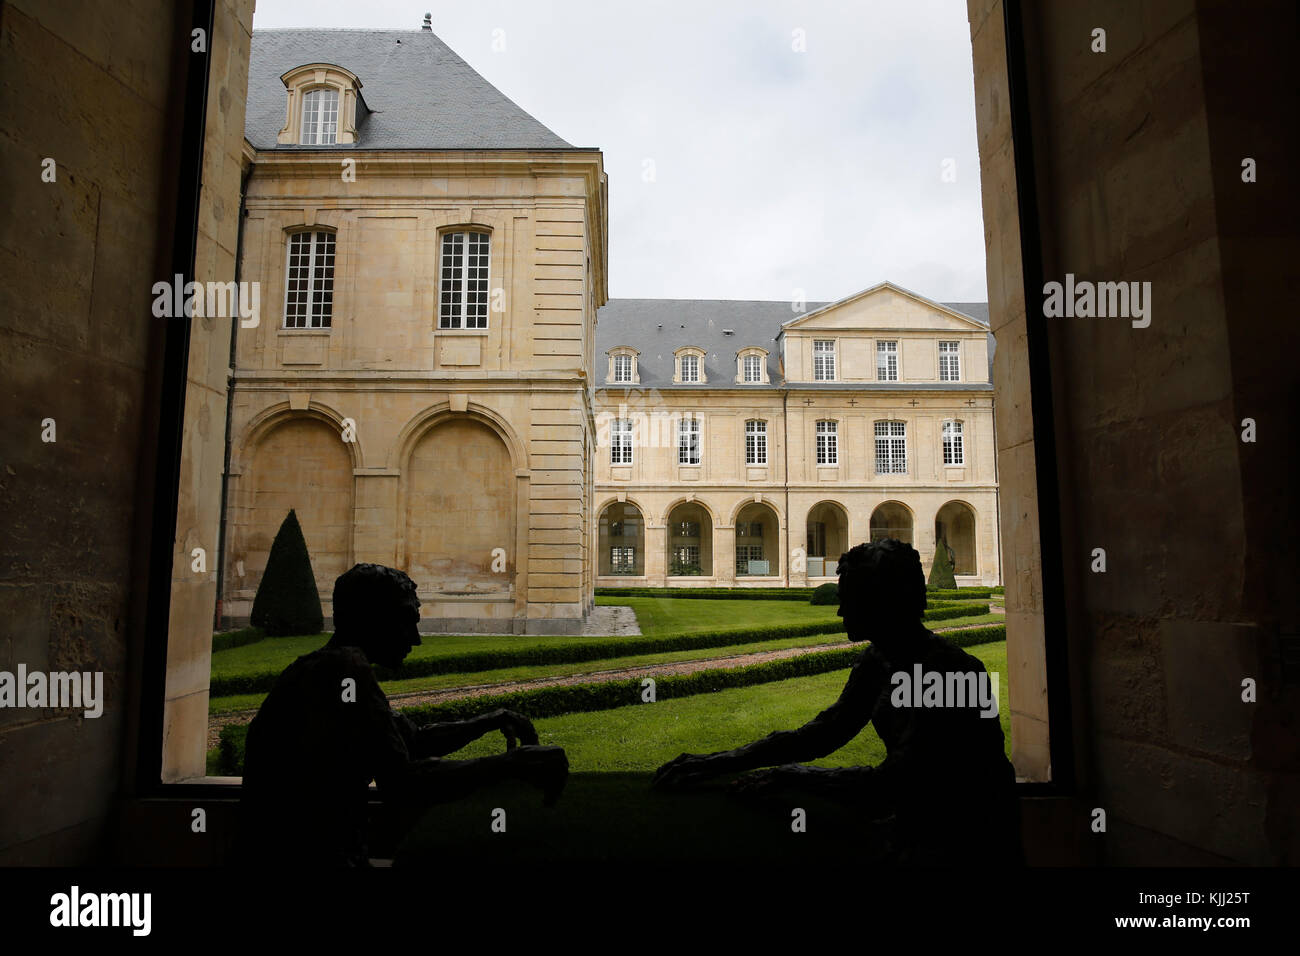 Art work displayed in the Abbaye-aux-Dames, Caen. France. - Stock Image